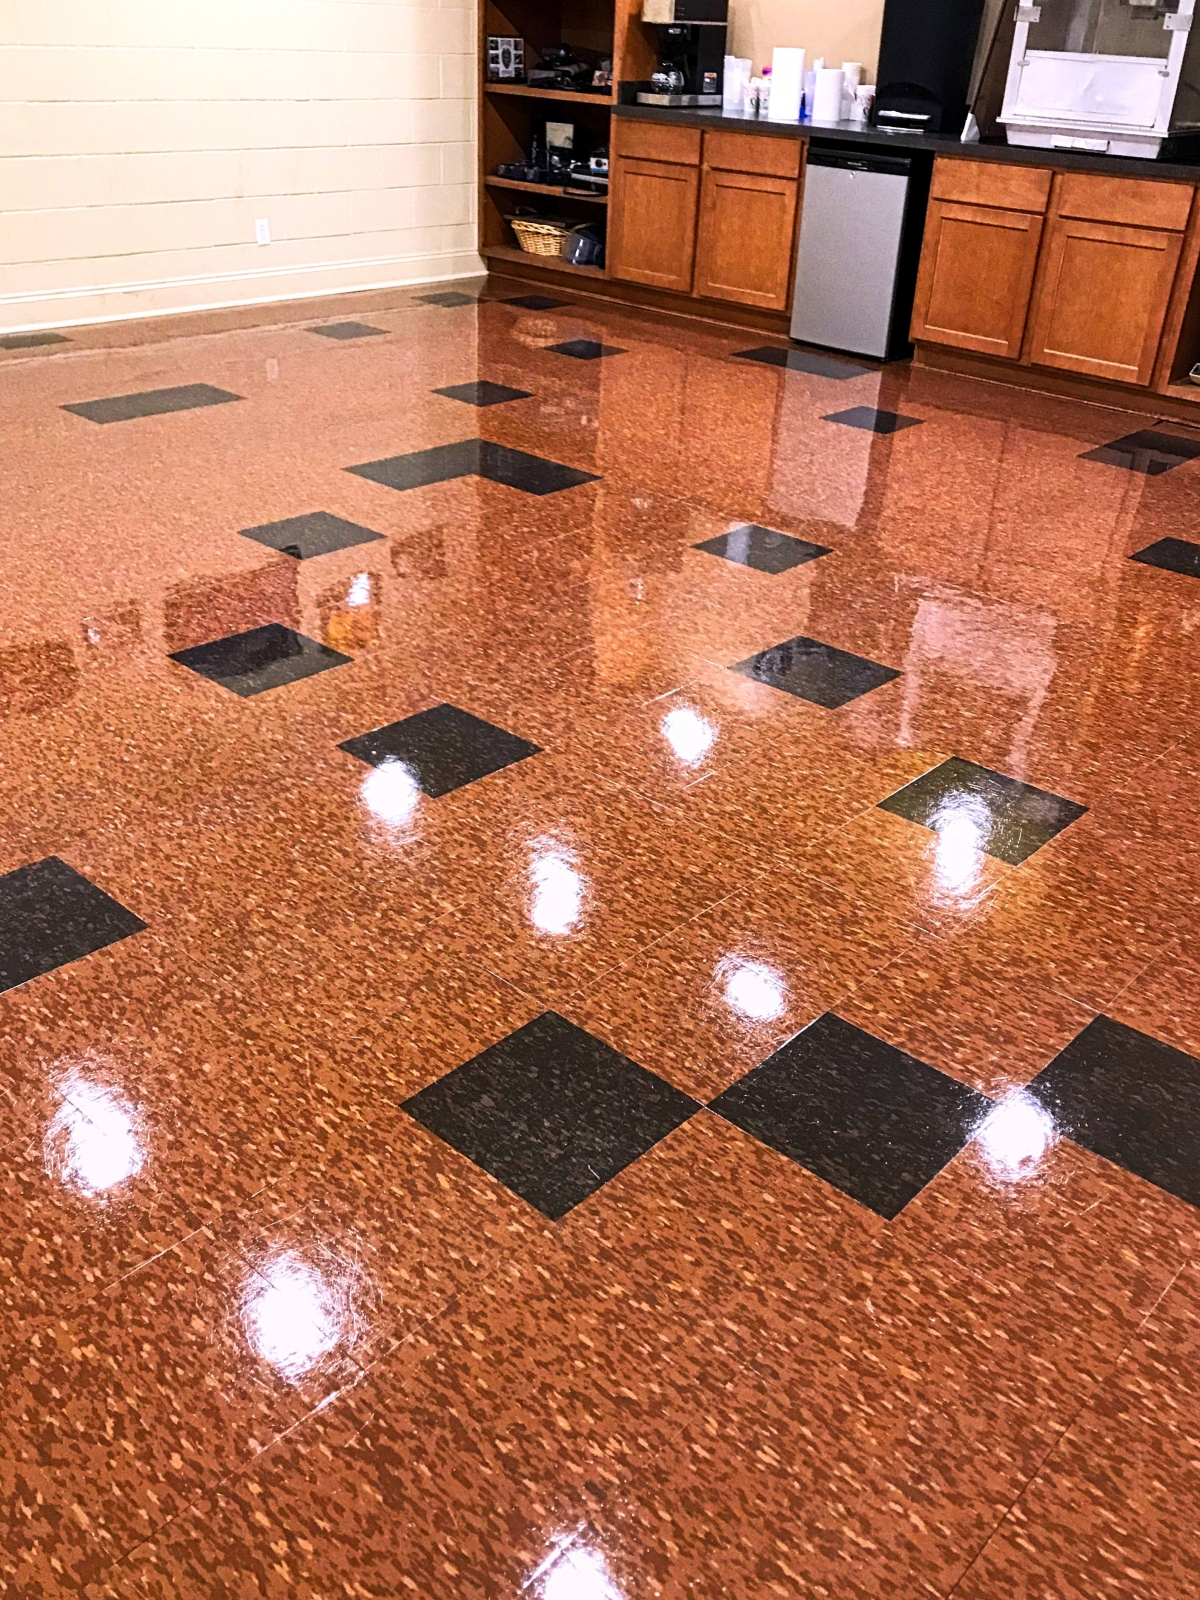 shiny floor done by Populist Special Projects Team